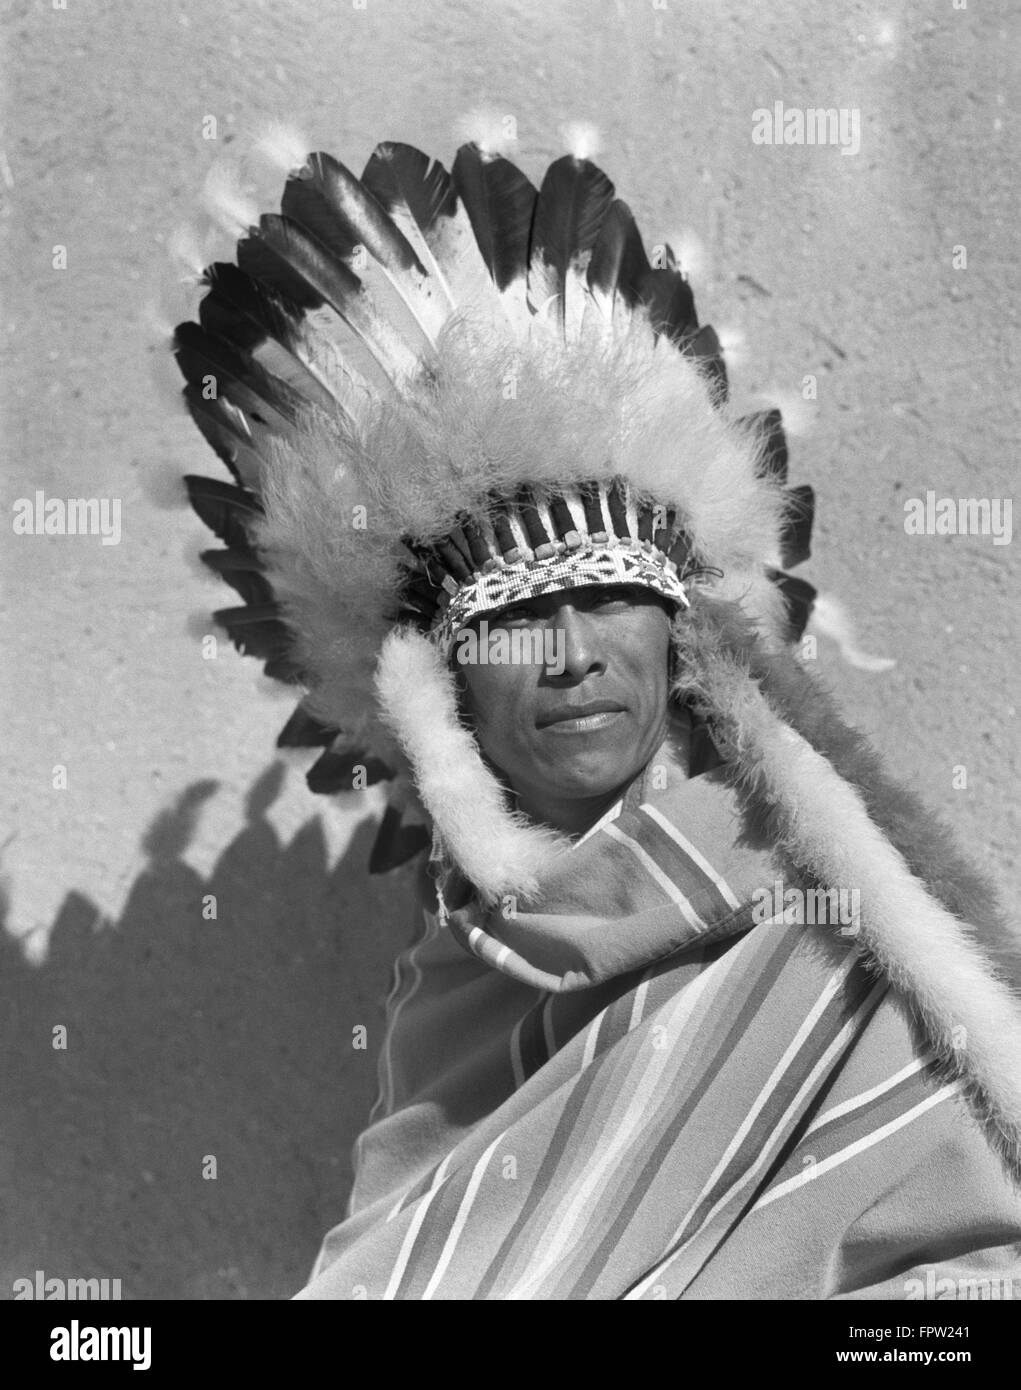 1930s PORTRAIT NATIVE AMERICAN INDIAN MAN WEARING FULL FEATHERED HEADDRESS WAR BONNET SAN ILDEFONSO PUEBLO NEW MEXICO - Stock Image